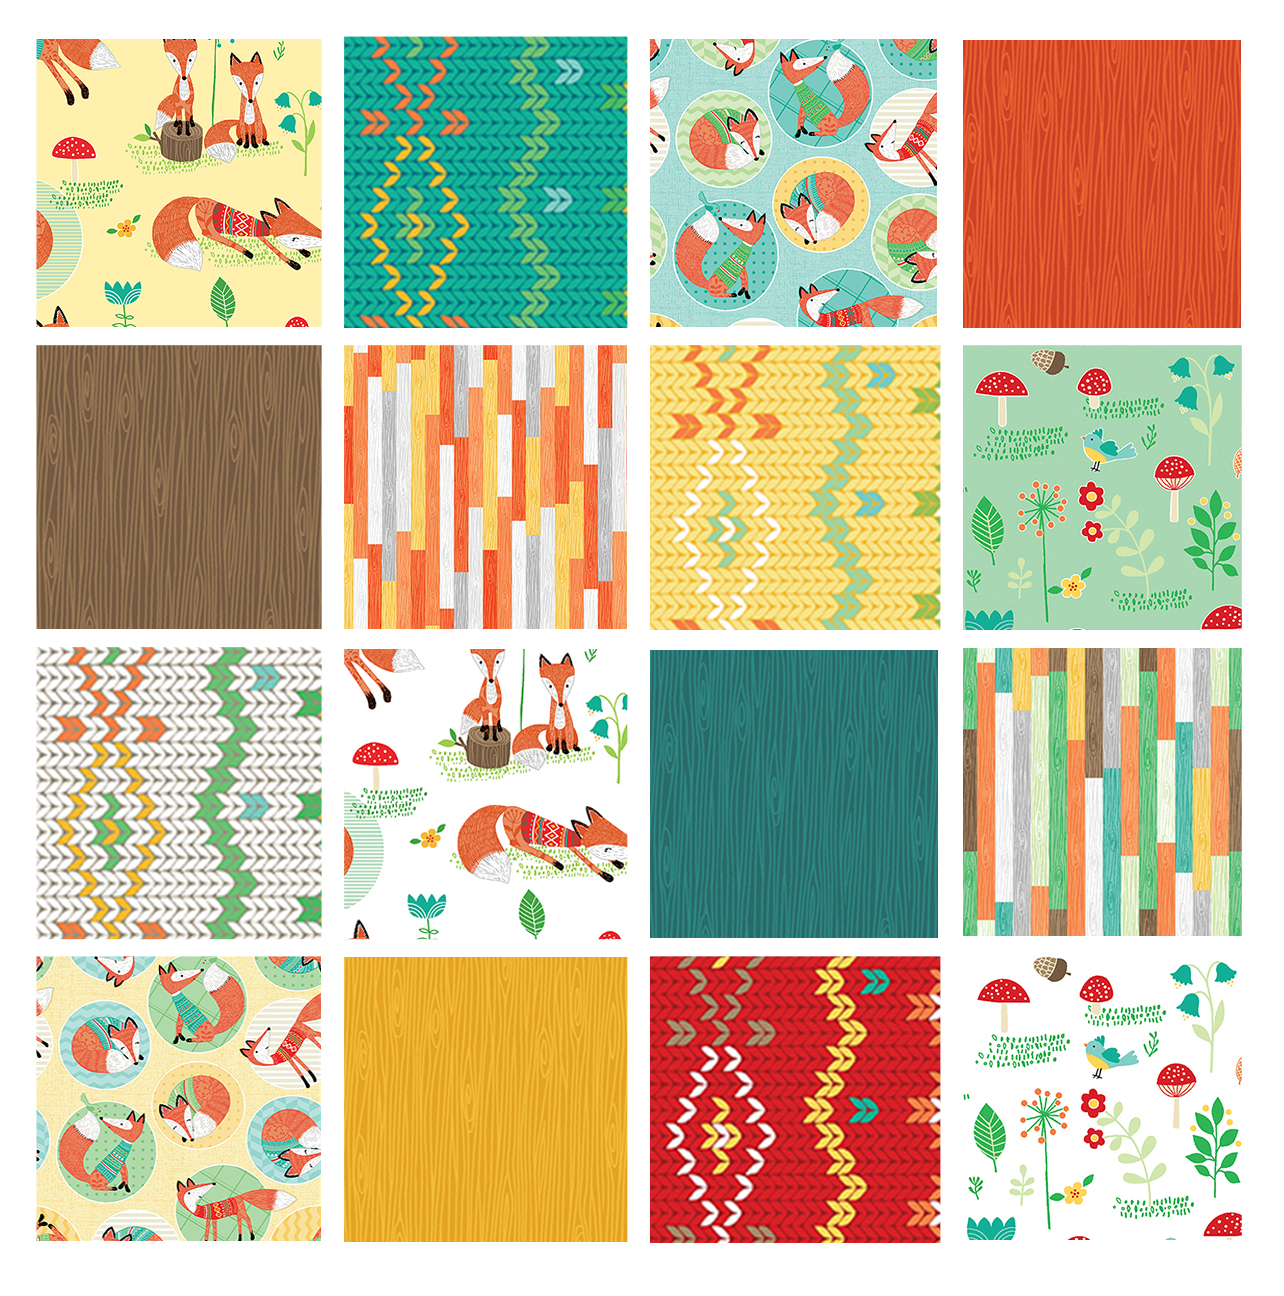 Cockerels Are Scattered All Over This Fabric Made From: Sew In Love {with Fabric}: Fox Fun